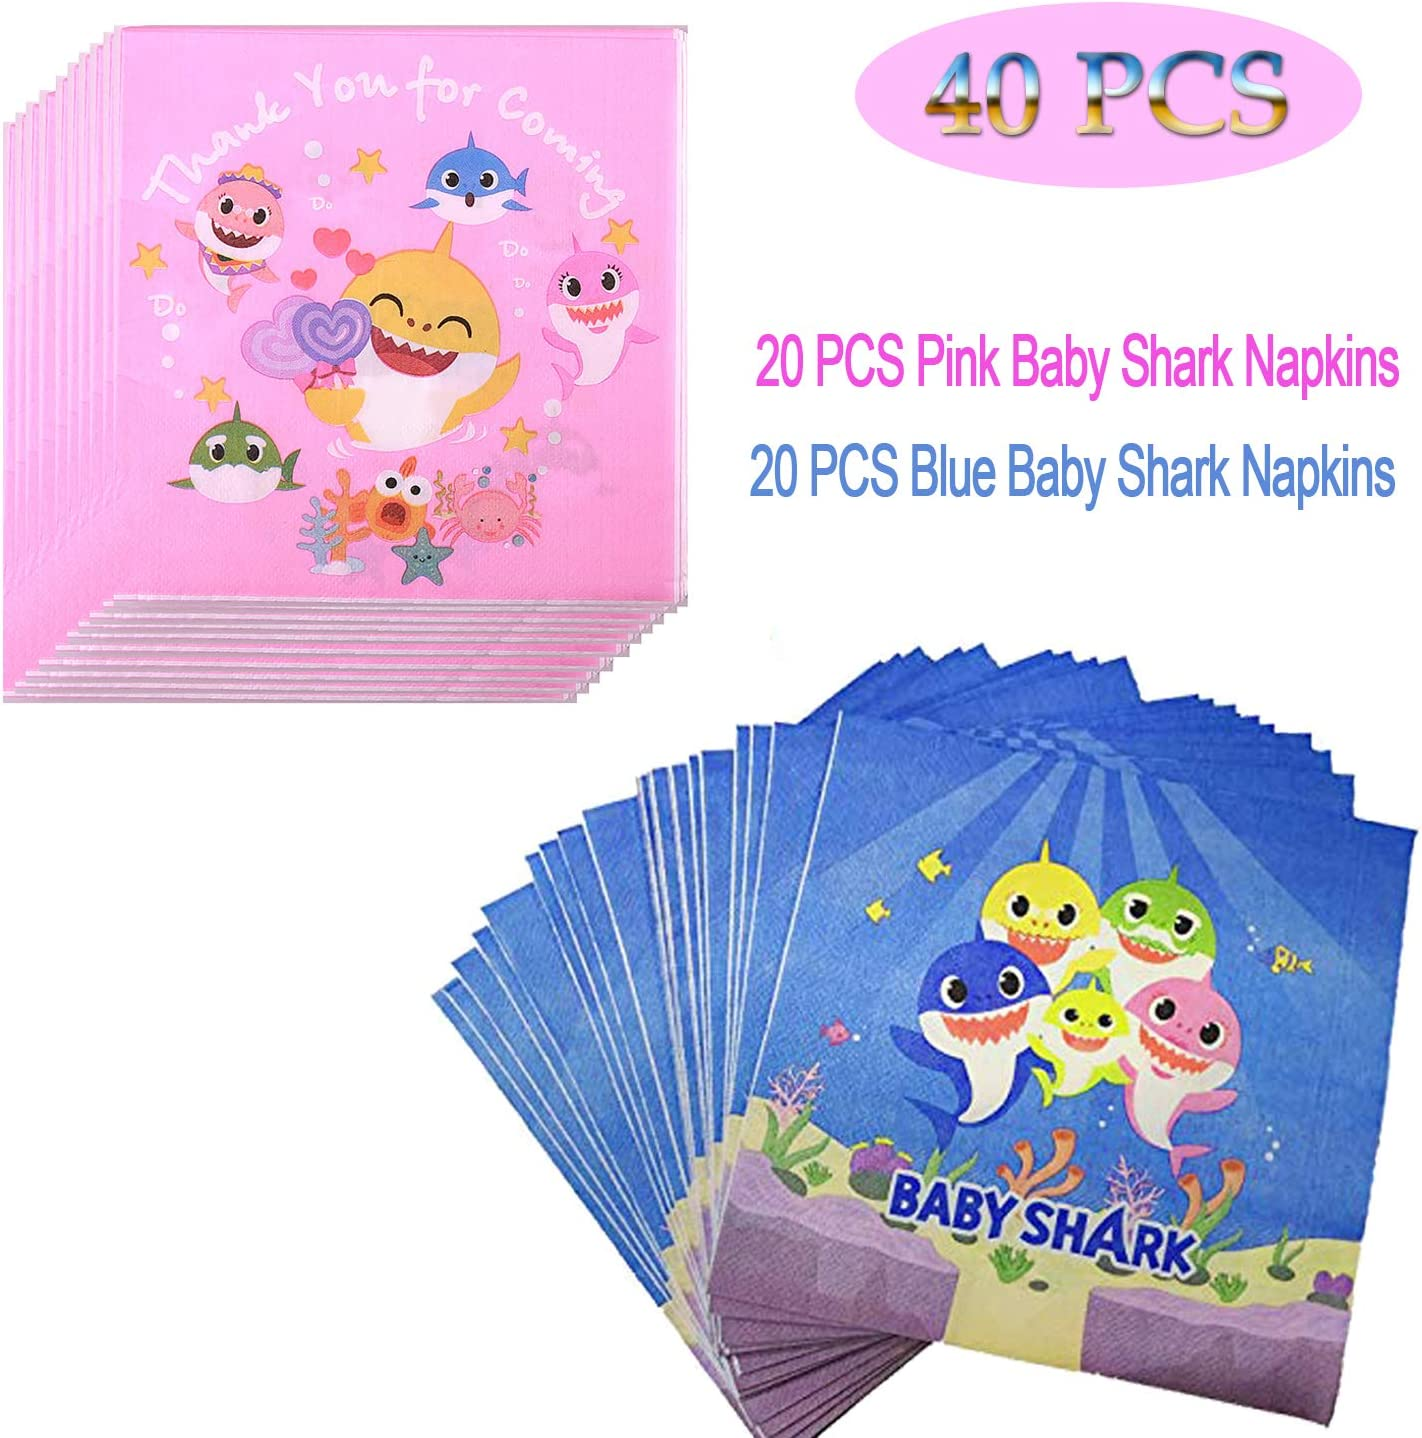 40Pcs Baby Shark Napkins For Baby Shark Theme Party – Girls Birthday,Baby Shower and Gender Reveal – 20 Pcs Pink and 20Pcs Blue Baby Shark Napkins For Best Boys Girls Party Supplies